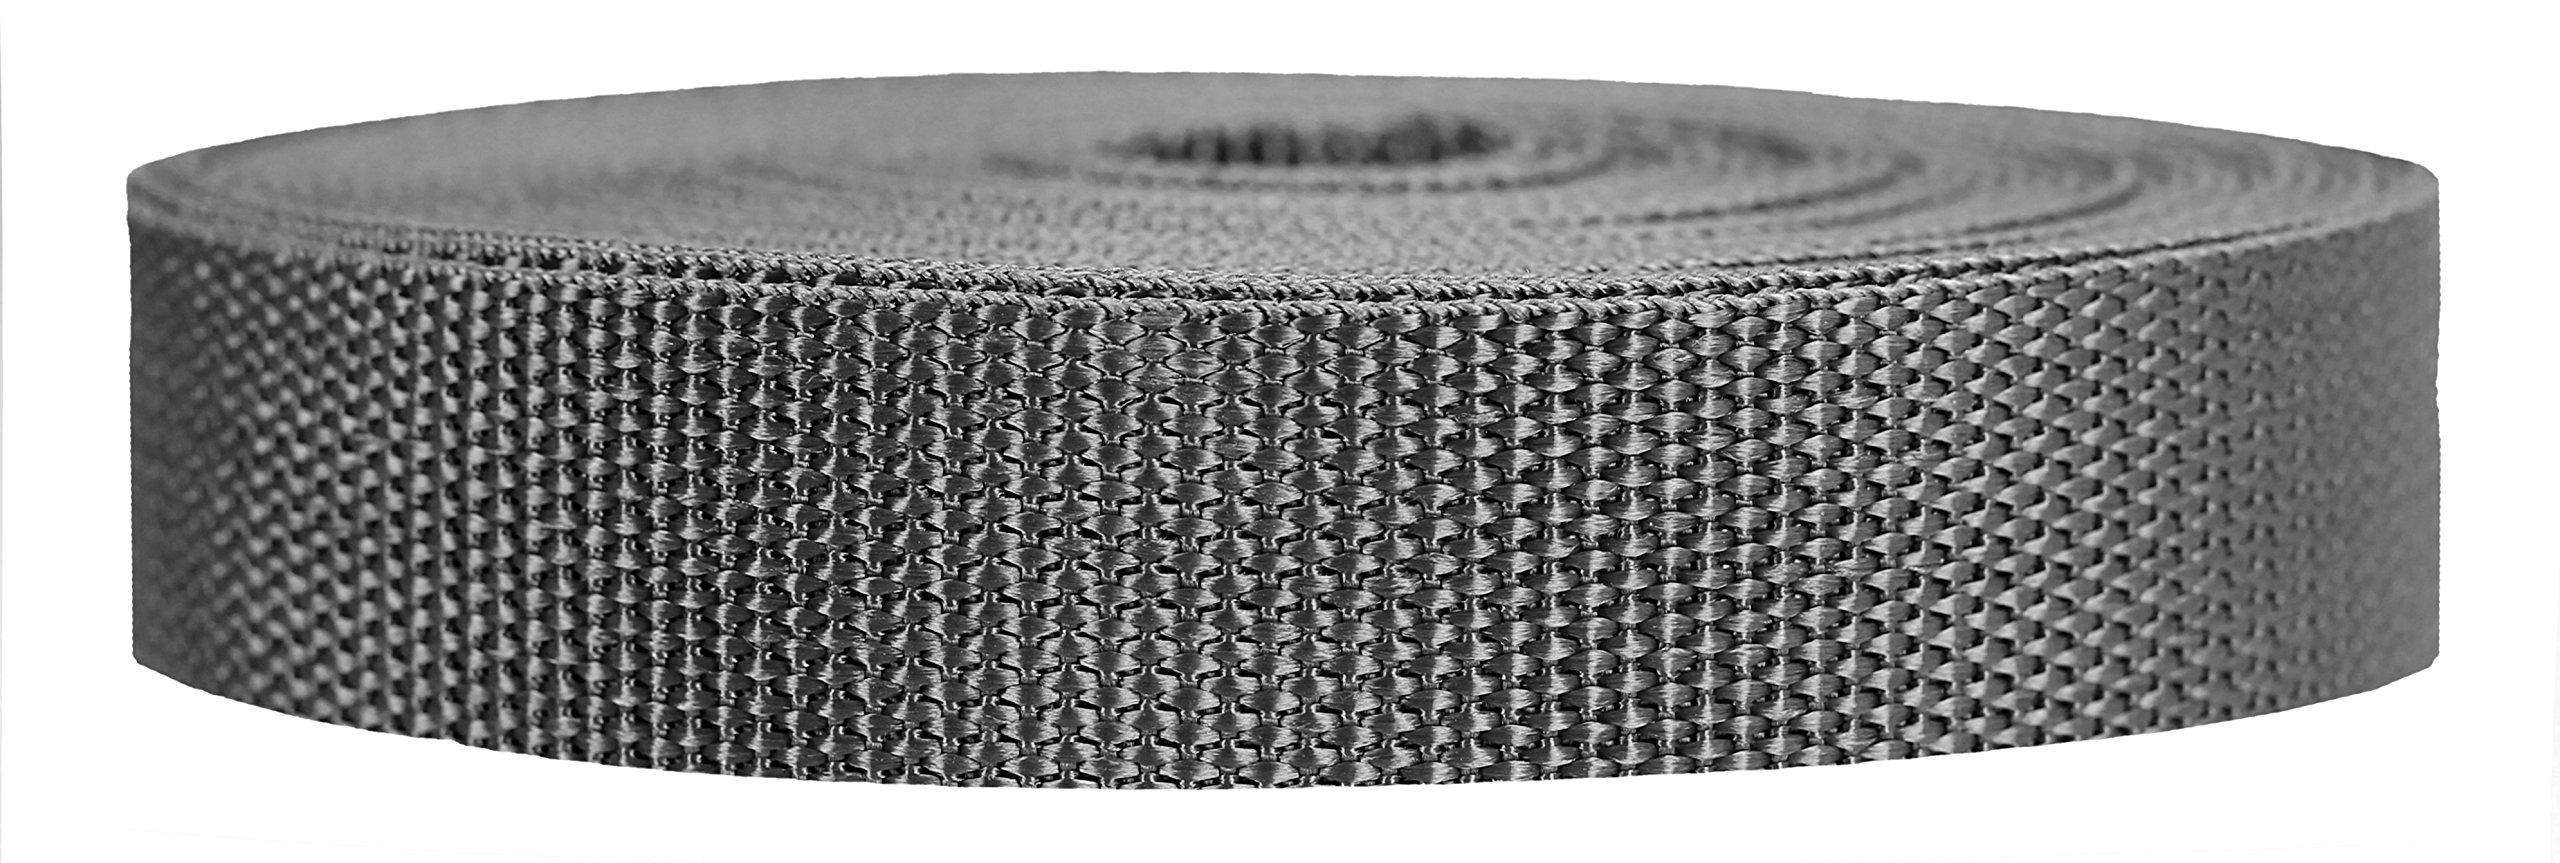 Strapworks Heavyweight Polypropylene Webbing - Heavy Duty Poly Strapping for Outdoor DIY Gear Repair, 1 Inch x 10 Yards - Charcoal